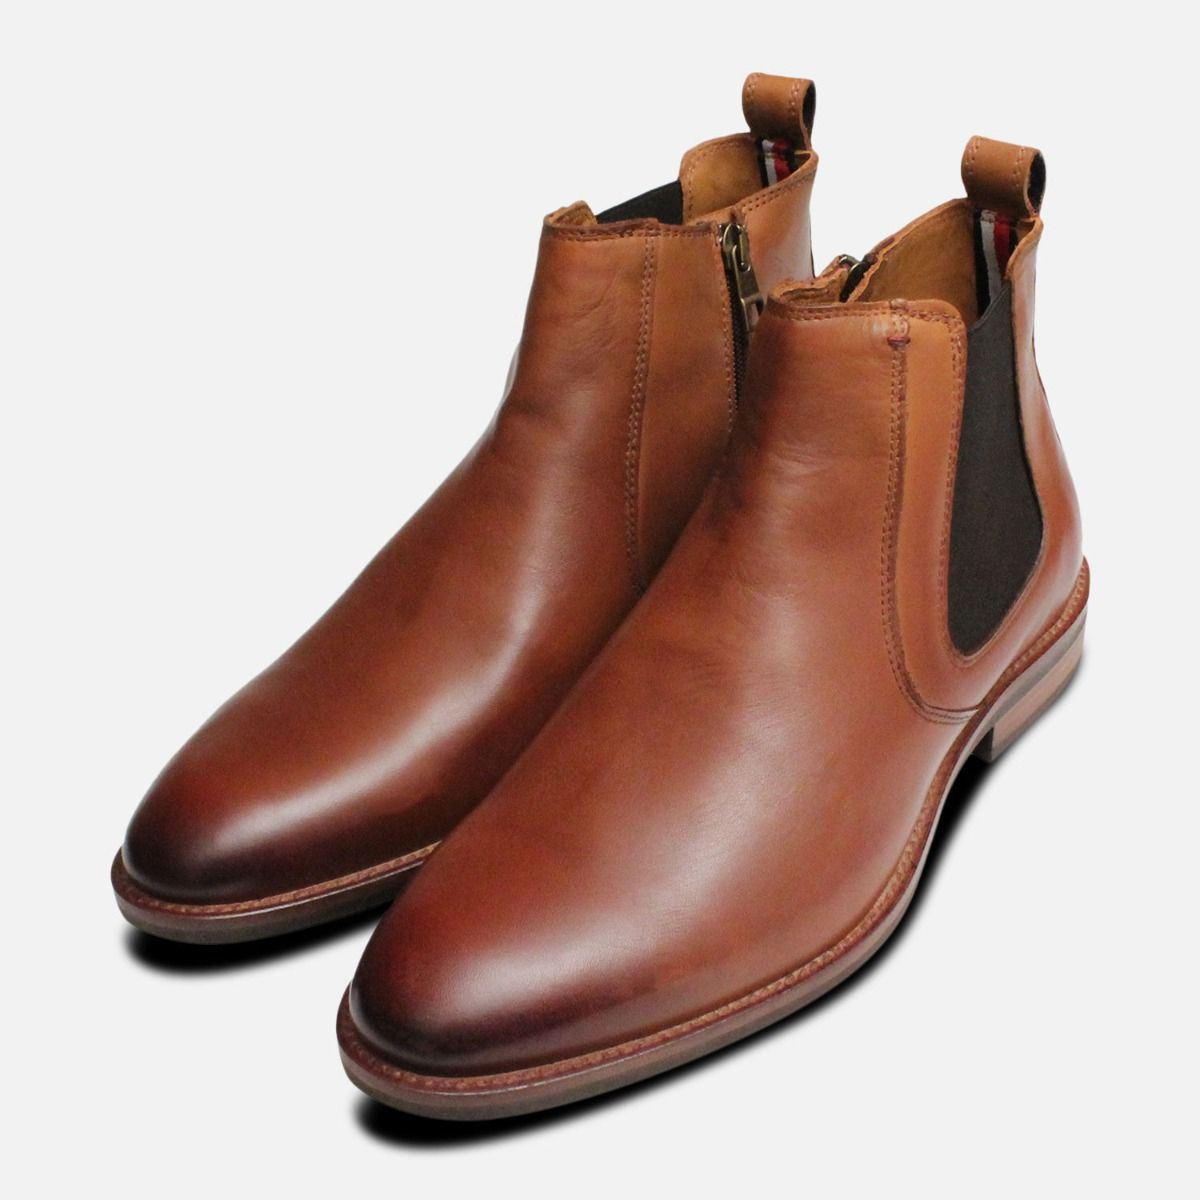 Tommy Hilfiger Chelsea Boots Light